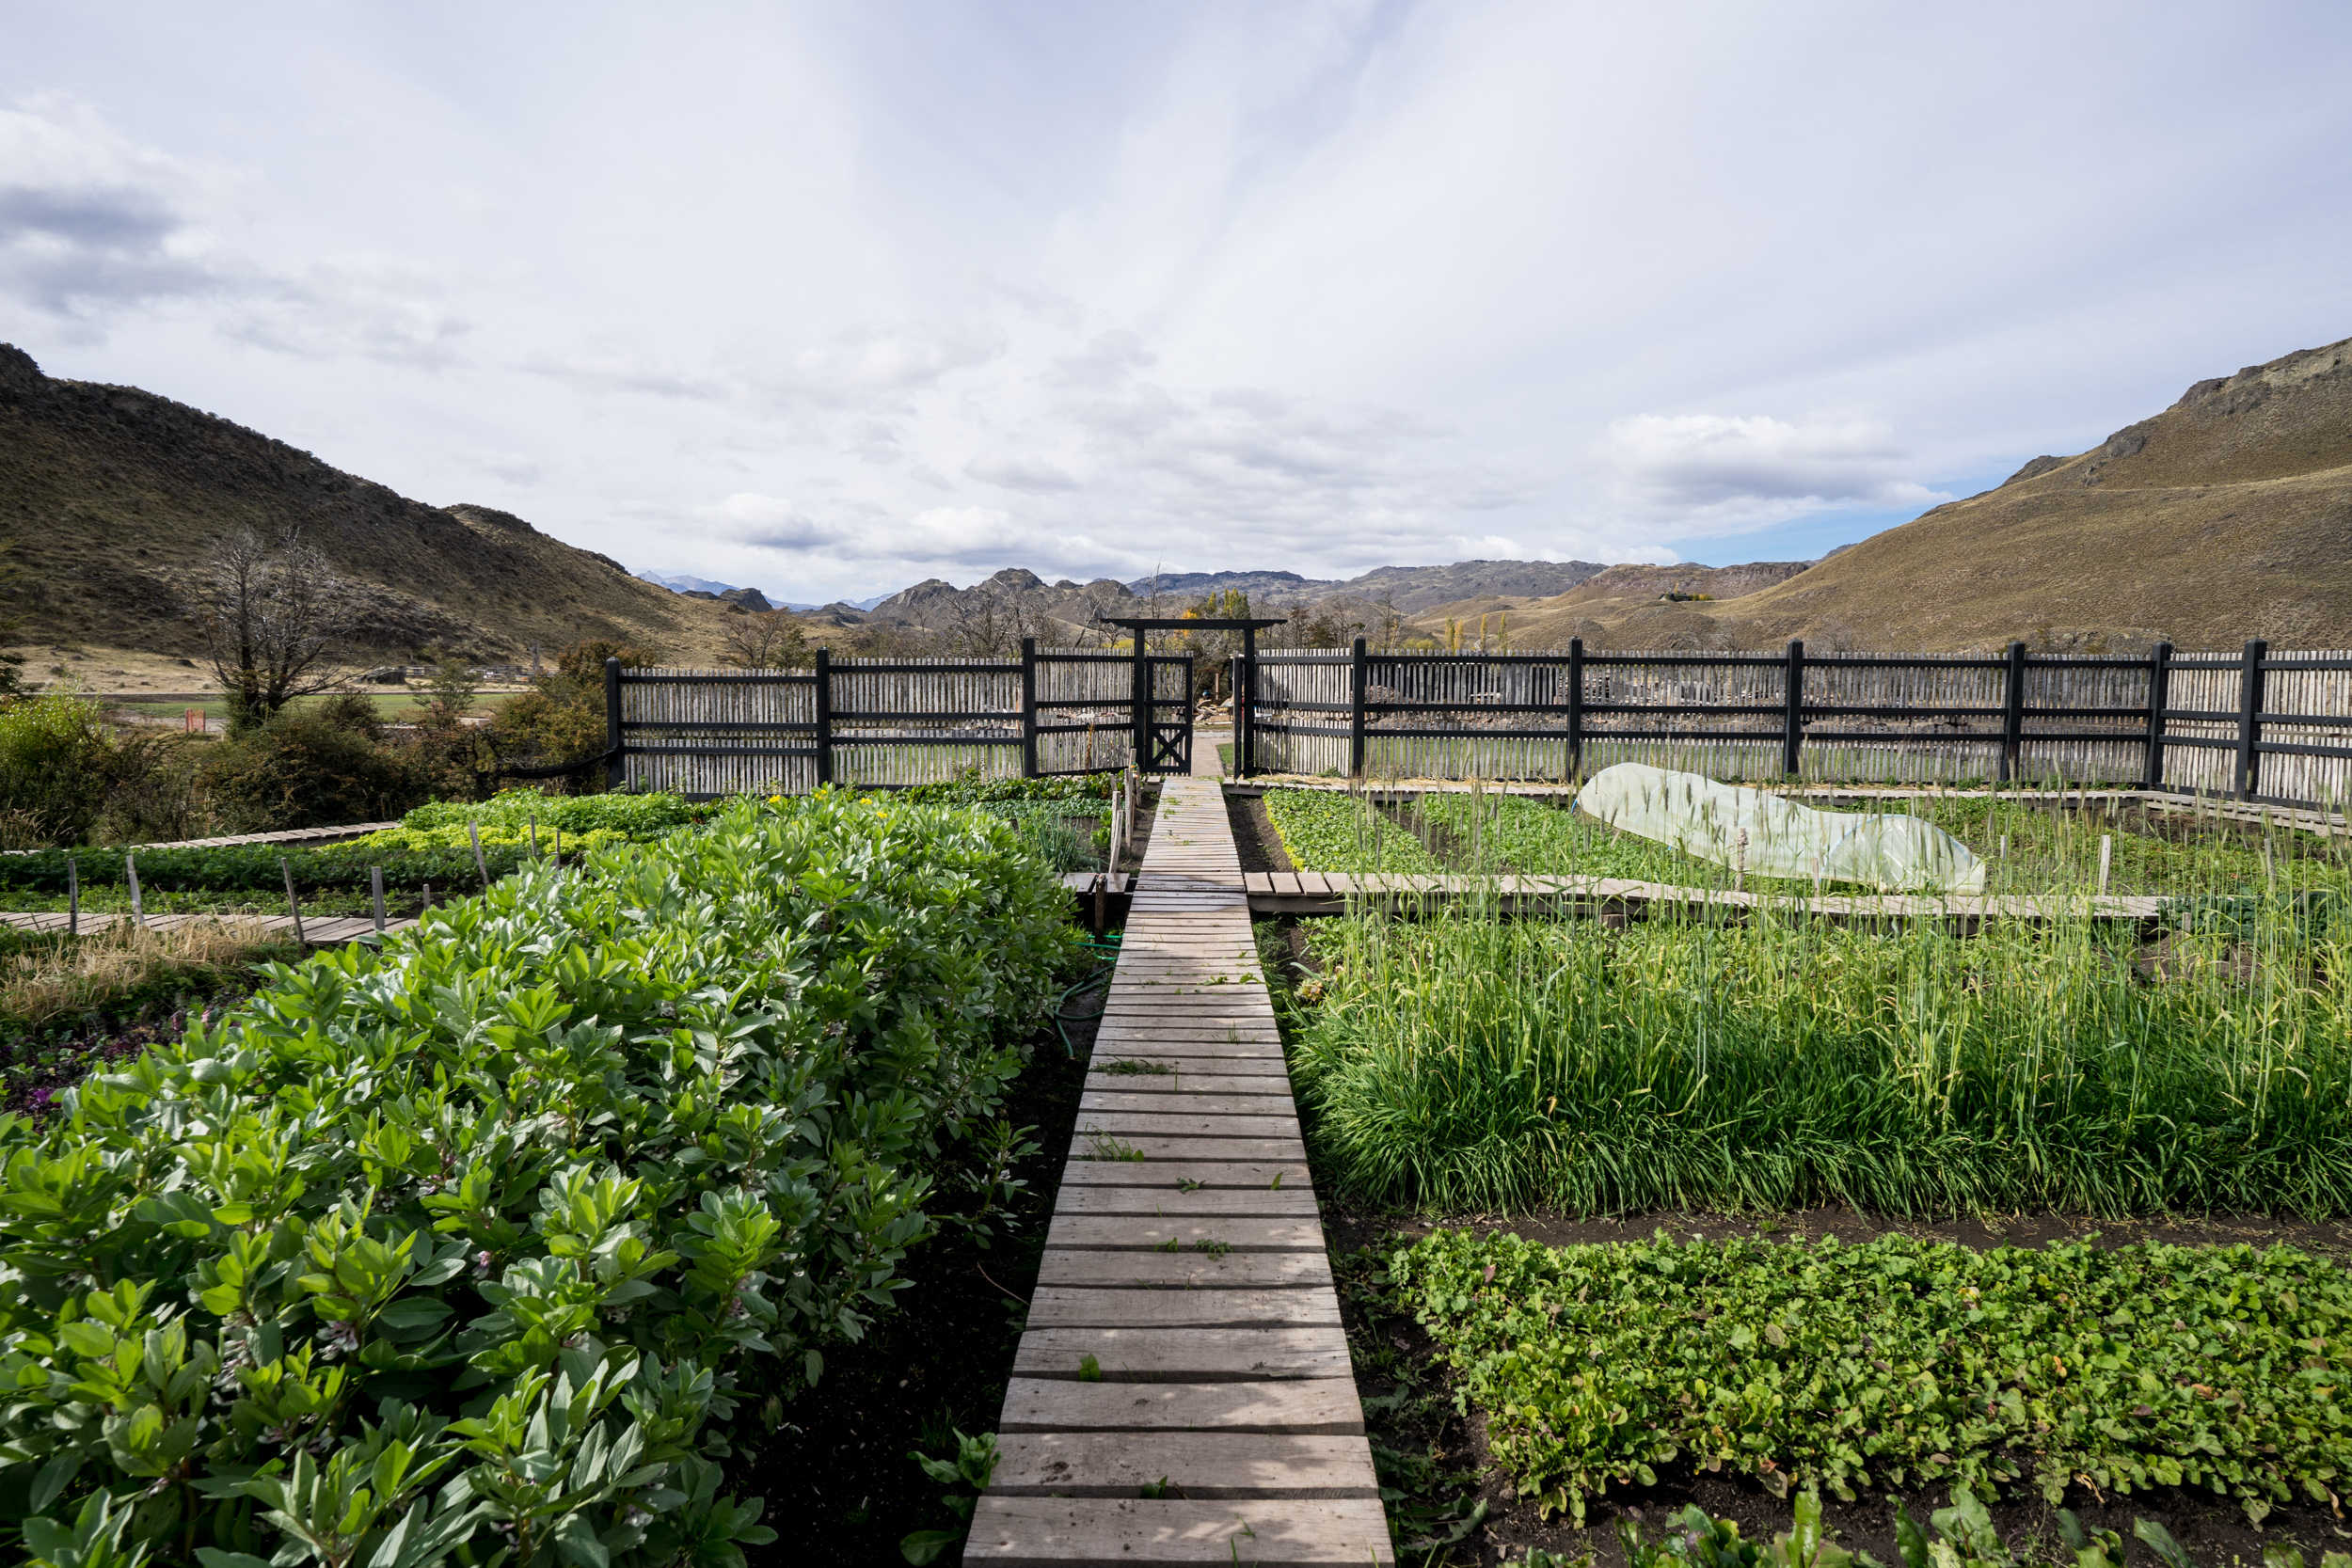 vegetable garden of the patagonia park - Planted on 600 sq metres/6,450 sq ft, this garden renders over three tons of produce per season.